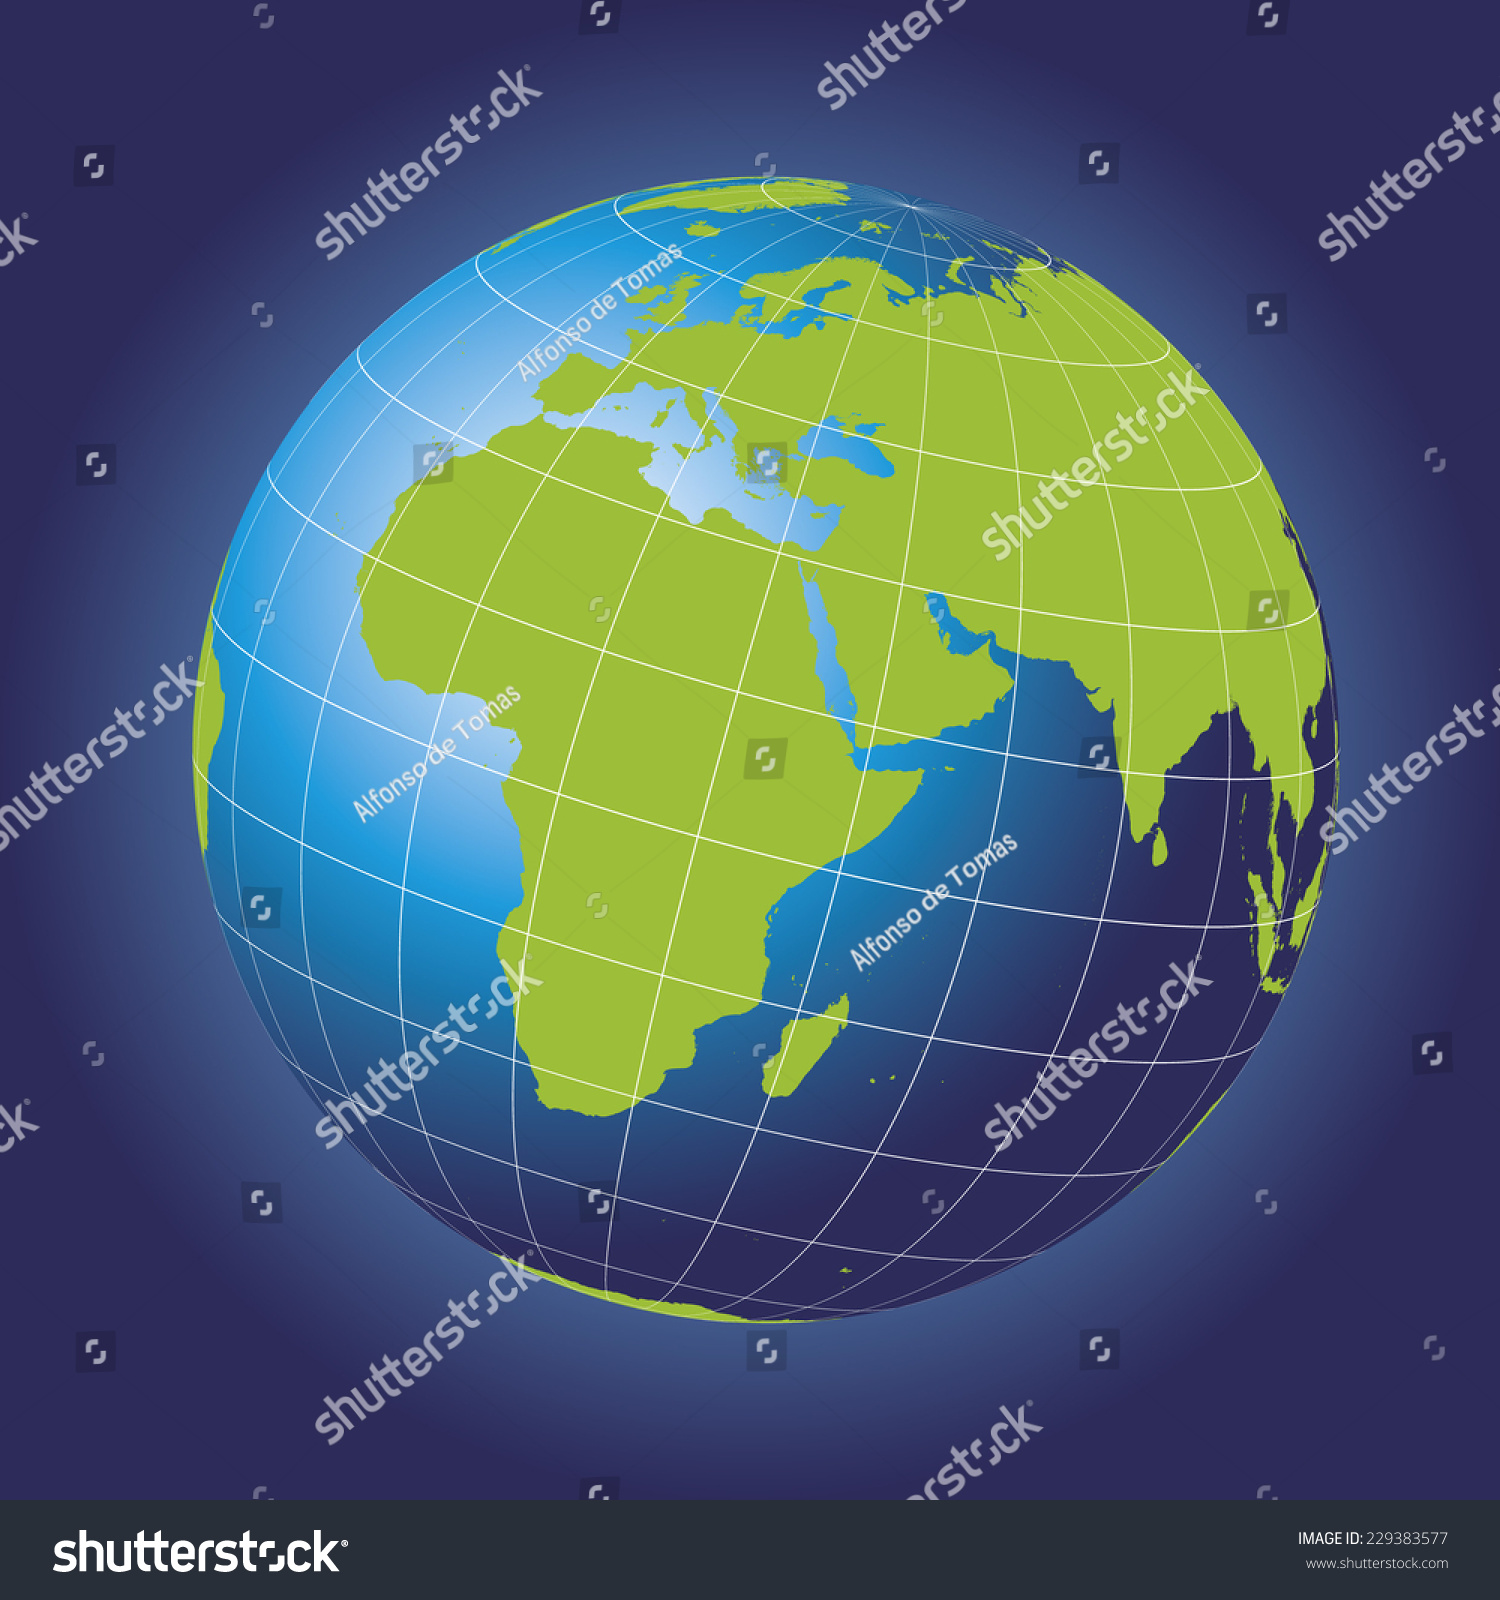 Europe map europe africa russia asia stock vector royalty free europe map europe africa russia asia north pole greenland gumiabroncs Images